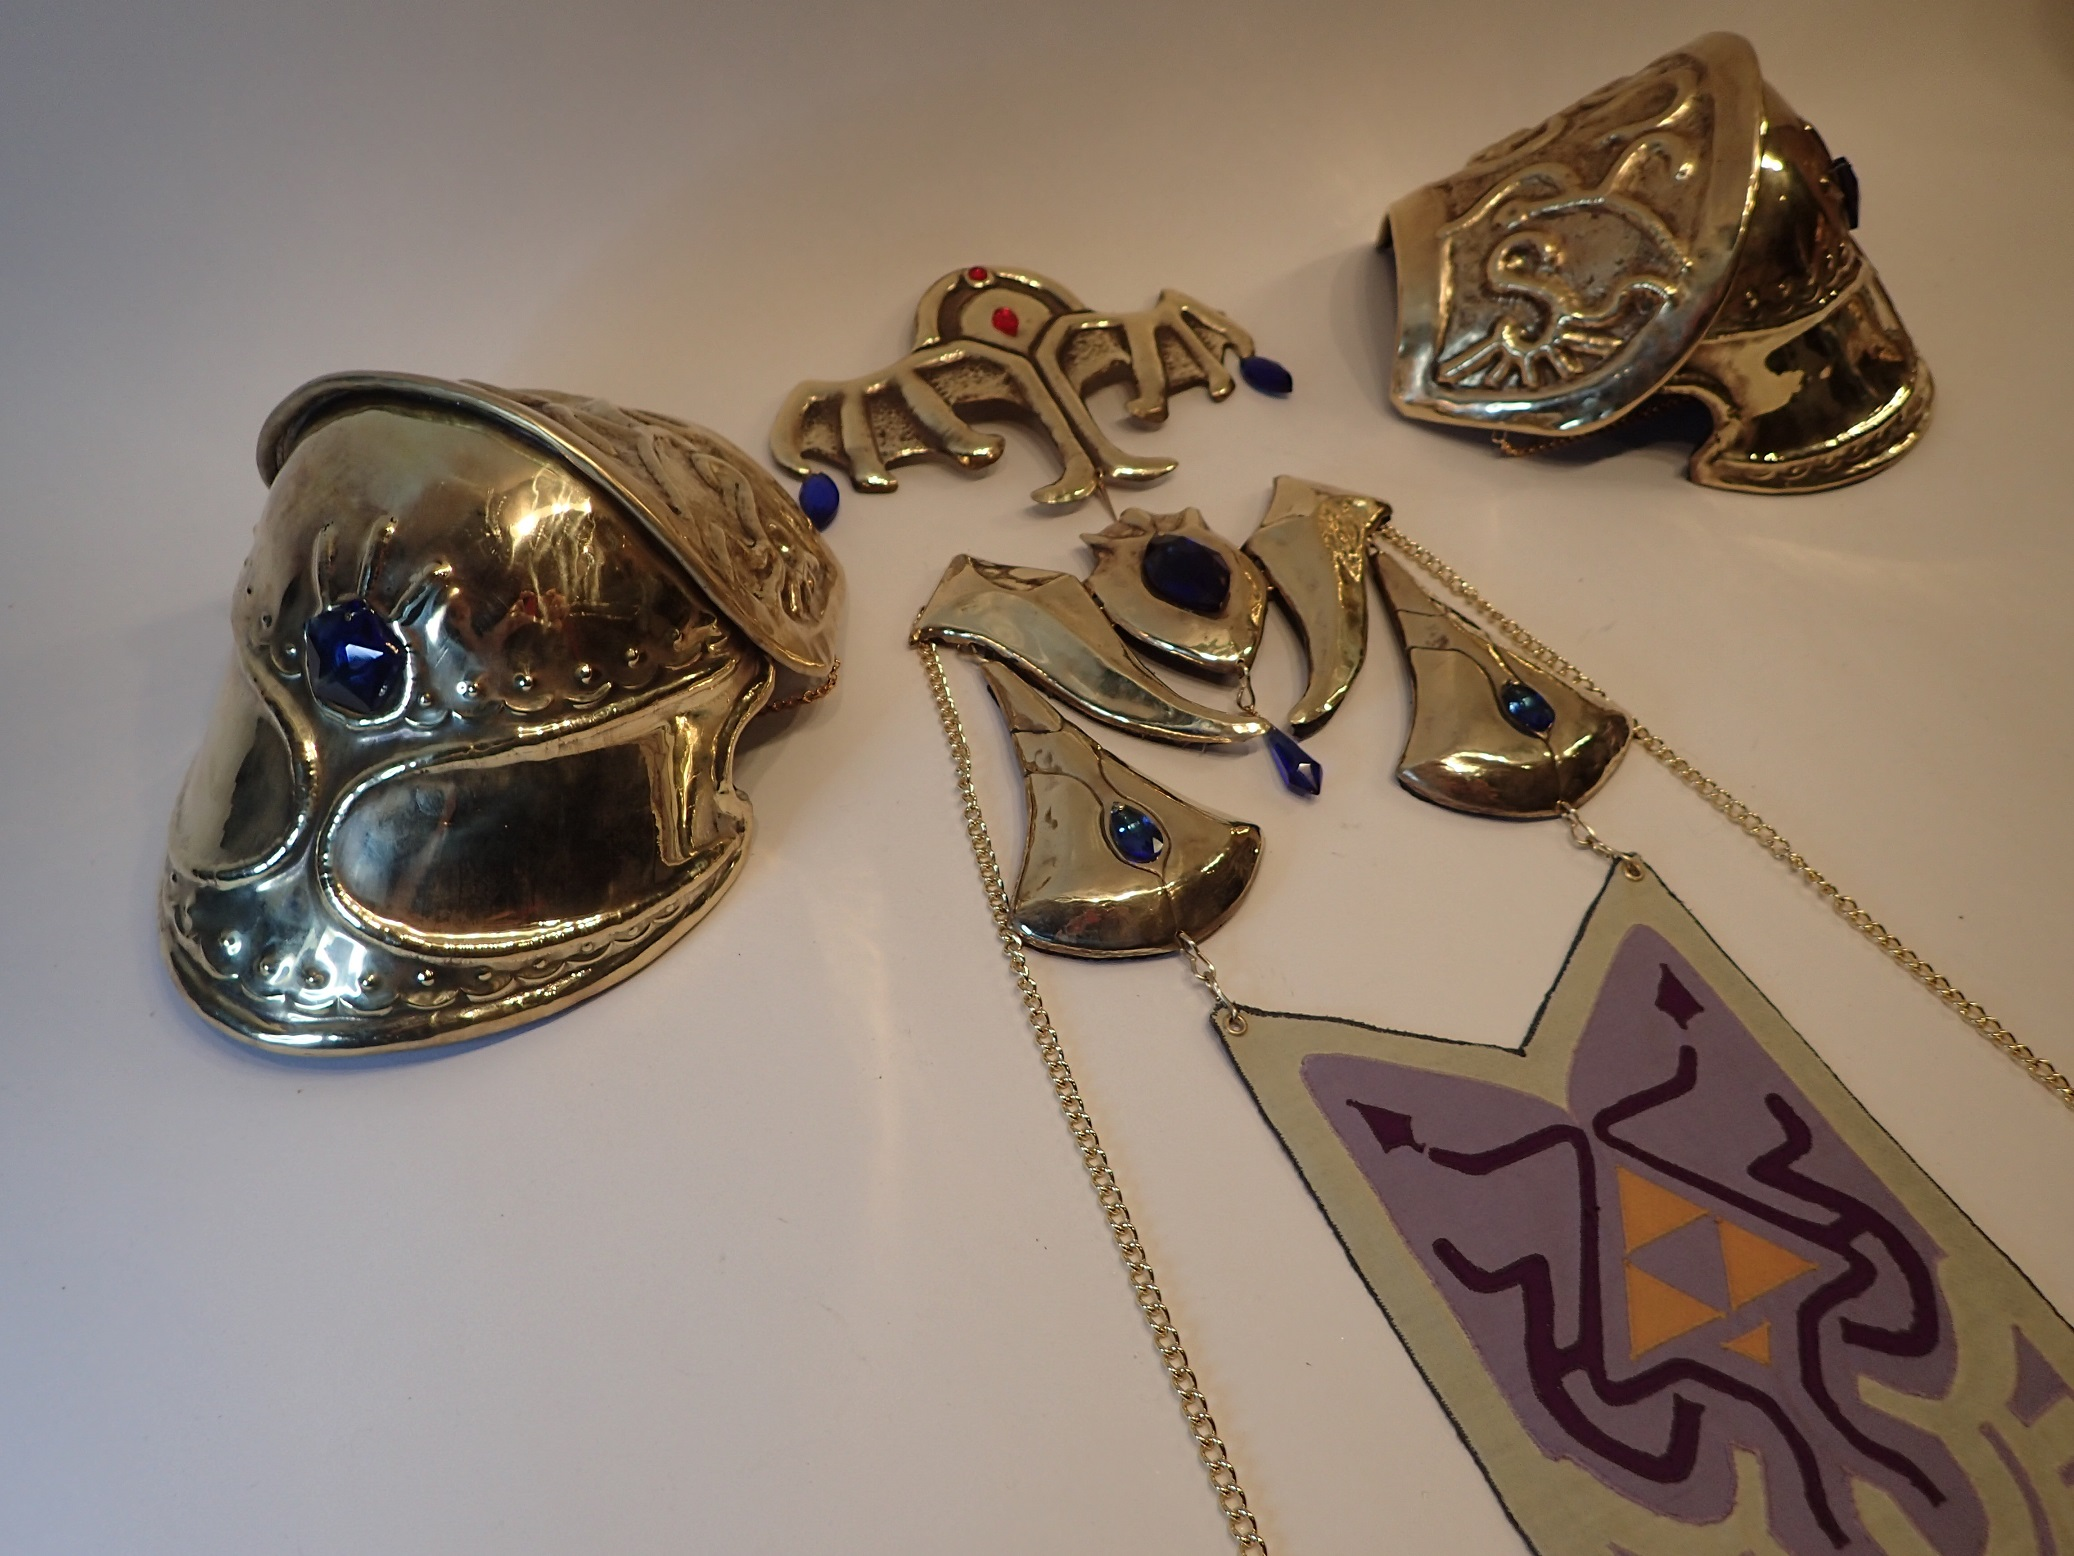 Princess Zelda Accessory Details